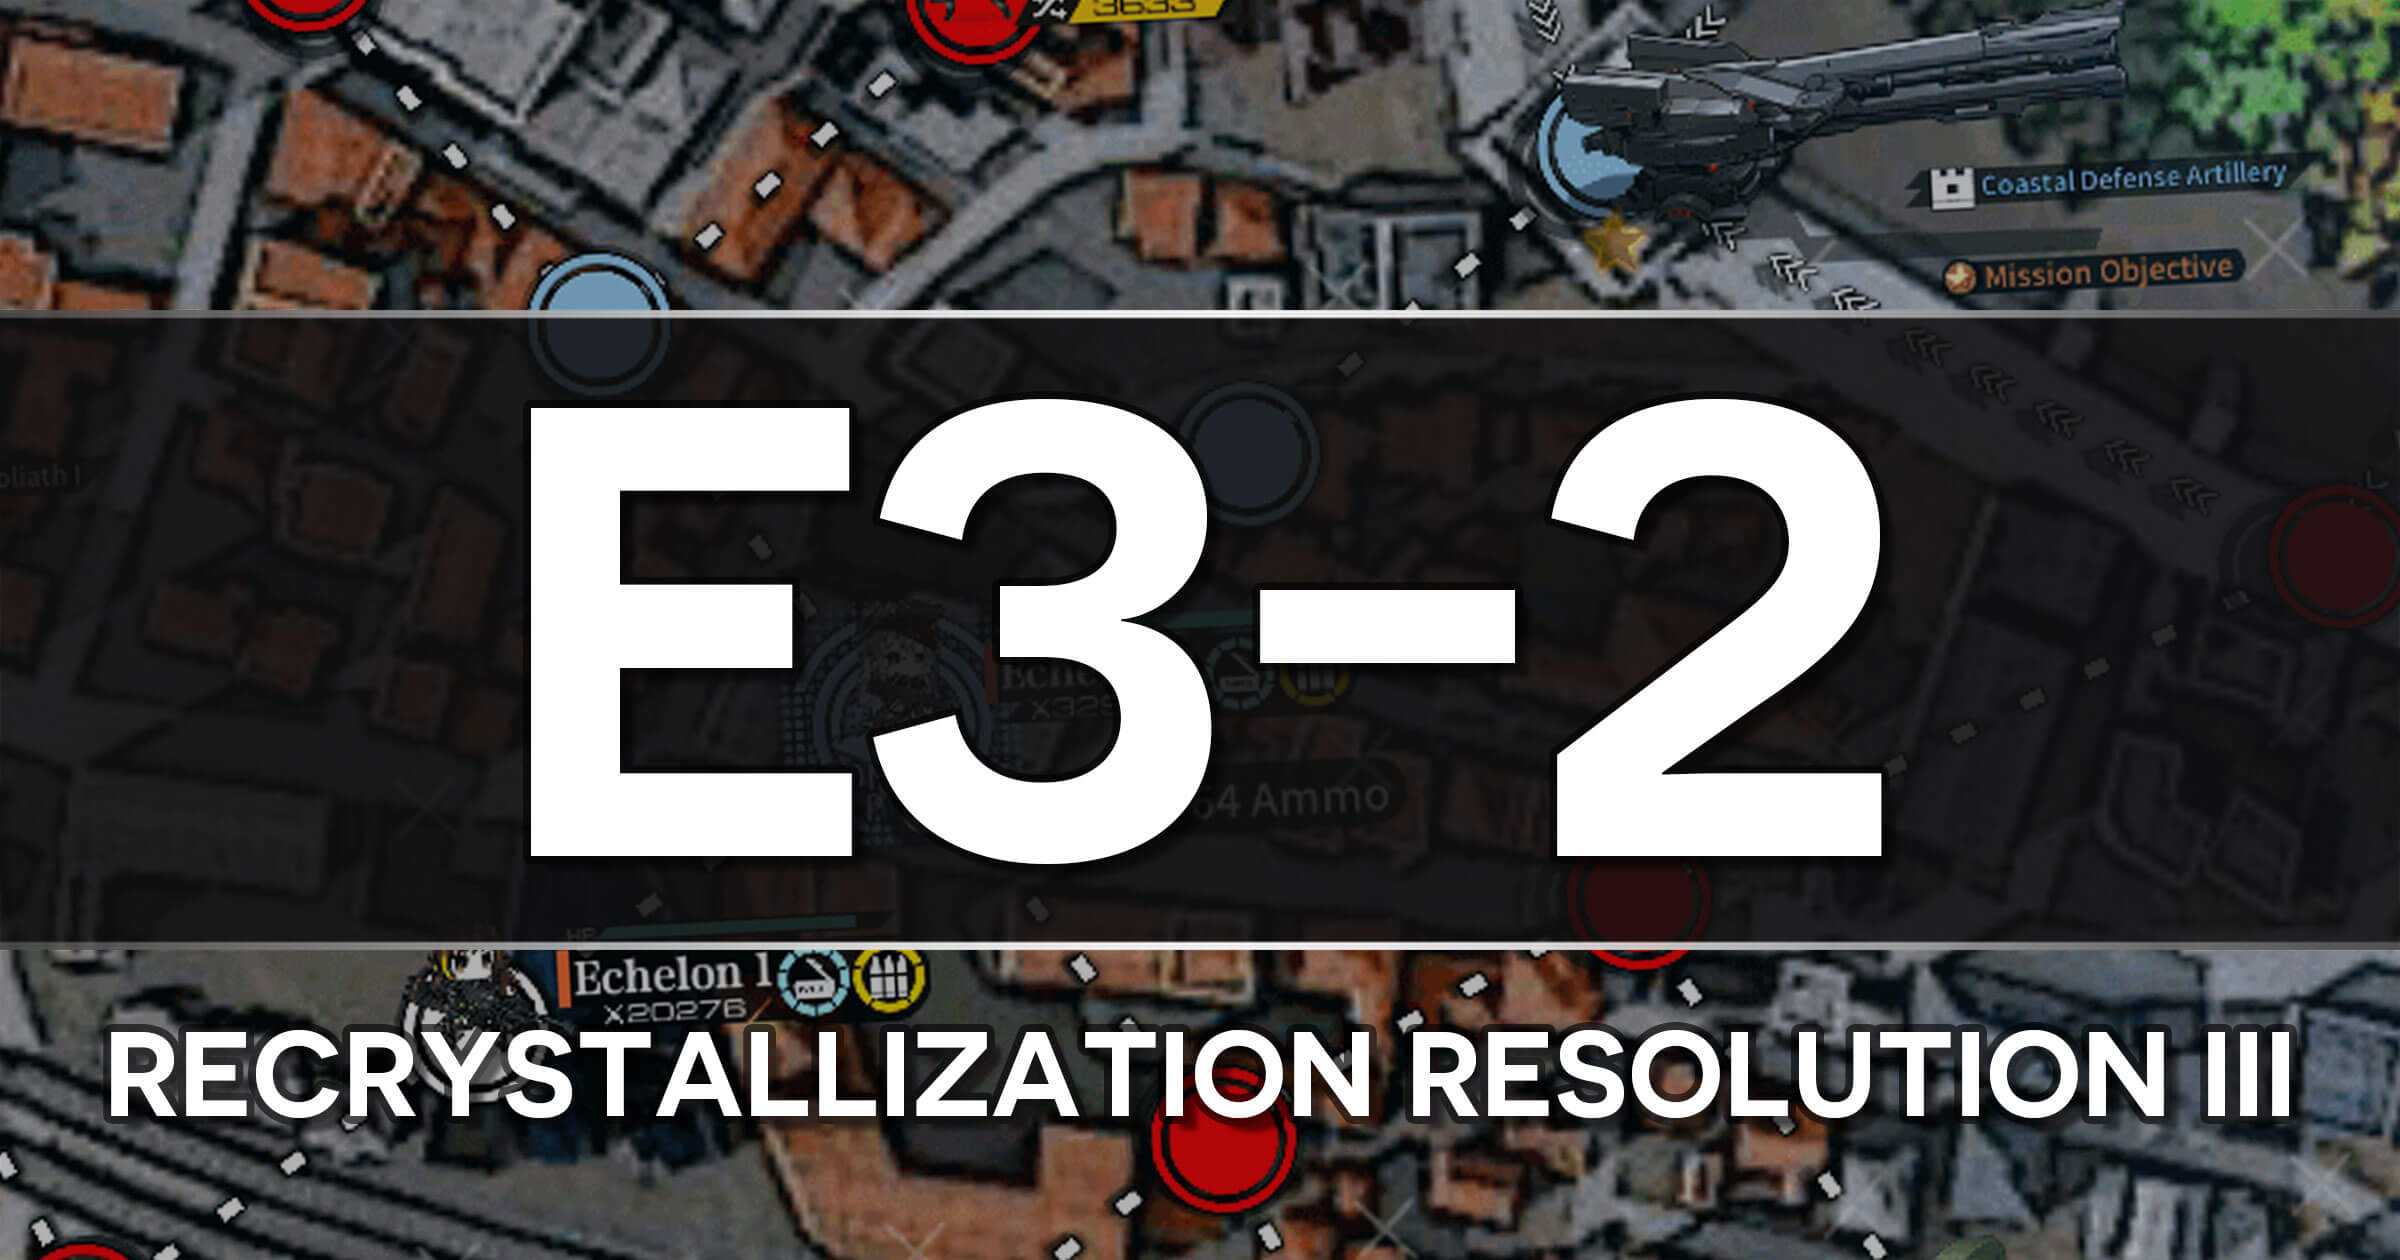 A guide to the Girls Frontline Polarized Light Event stage E3-2: Recrystallization Resolution III